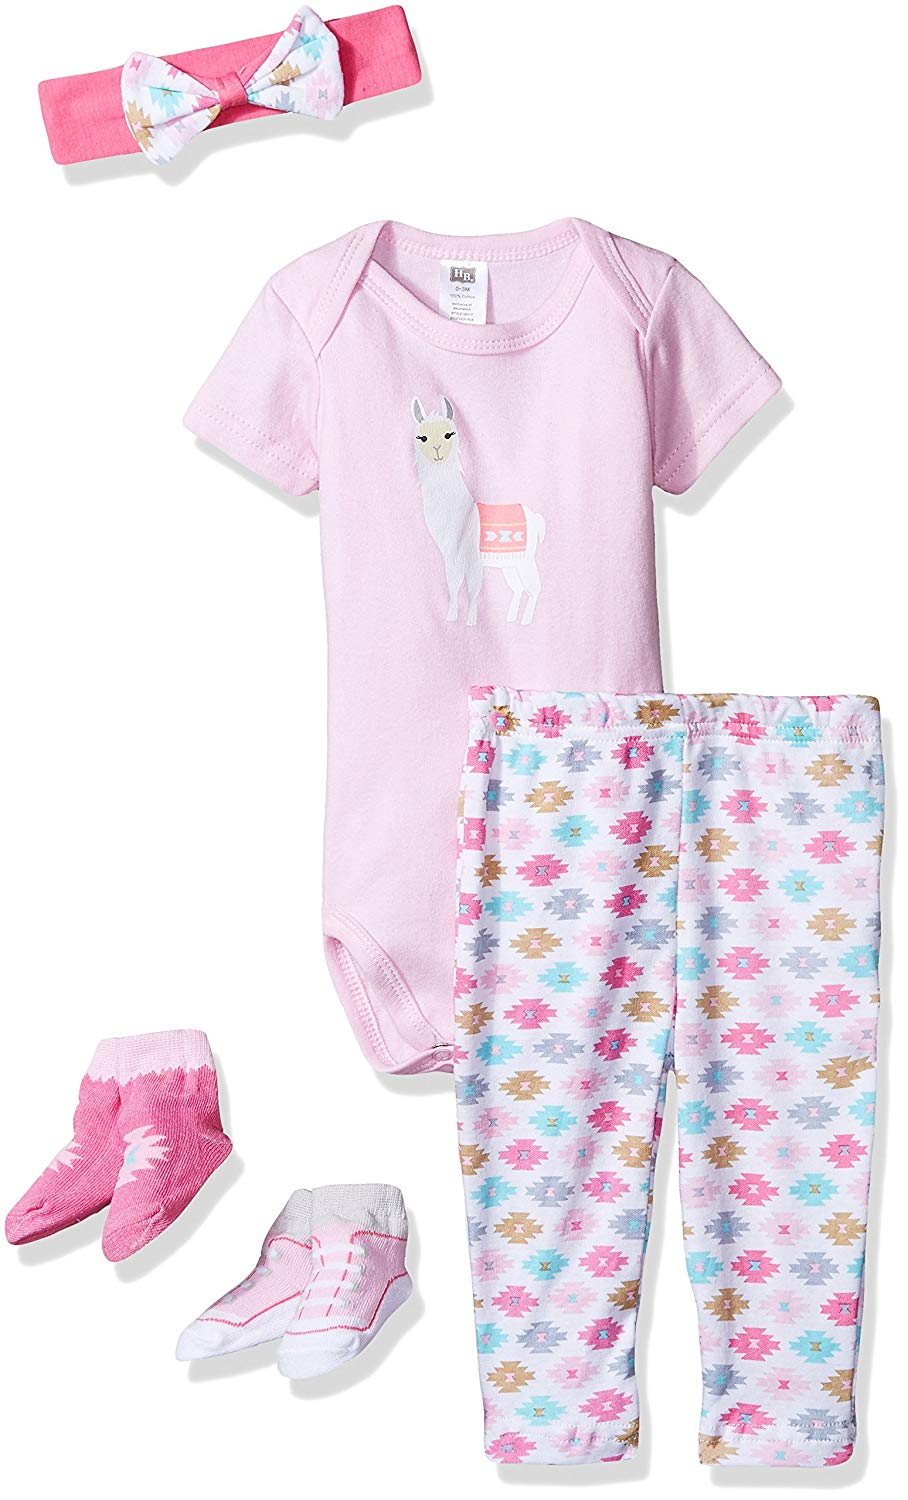 Hudson Baby Baby 5 Piece Bodysuit, Pant, Cap and Socks Gift Set